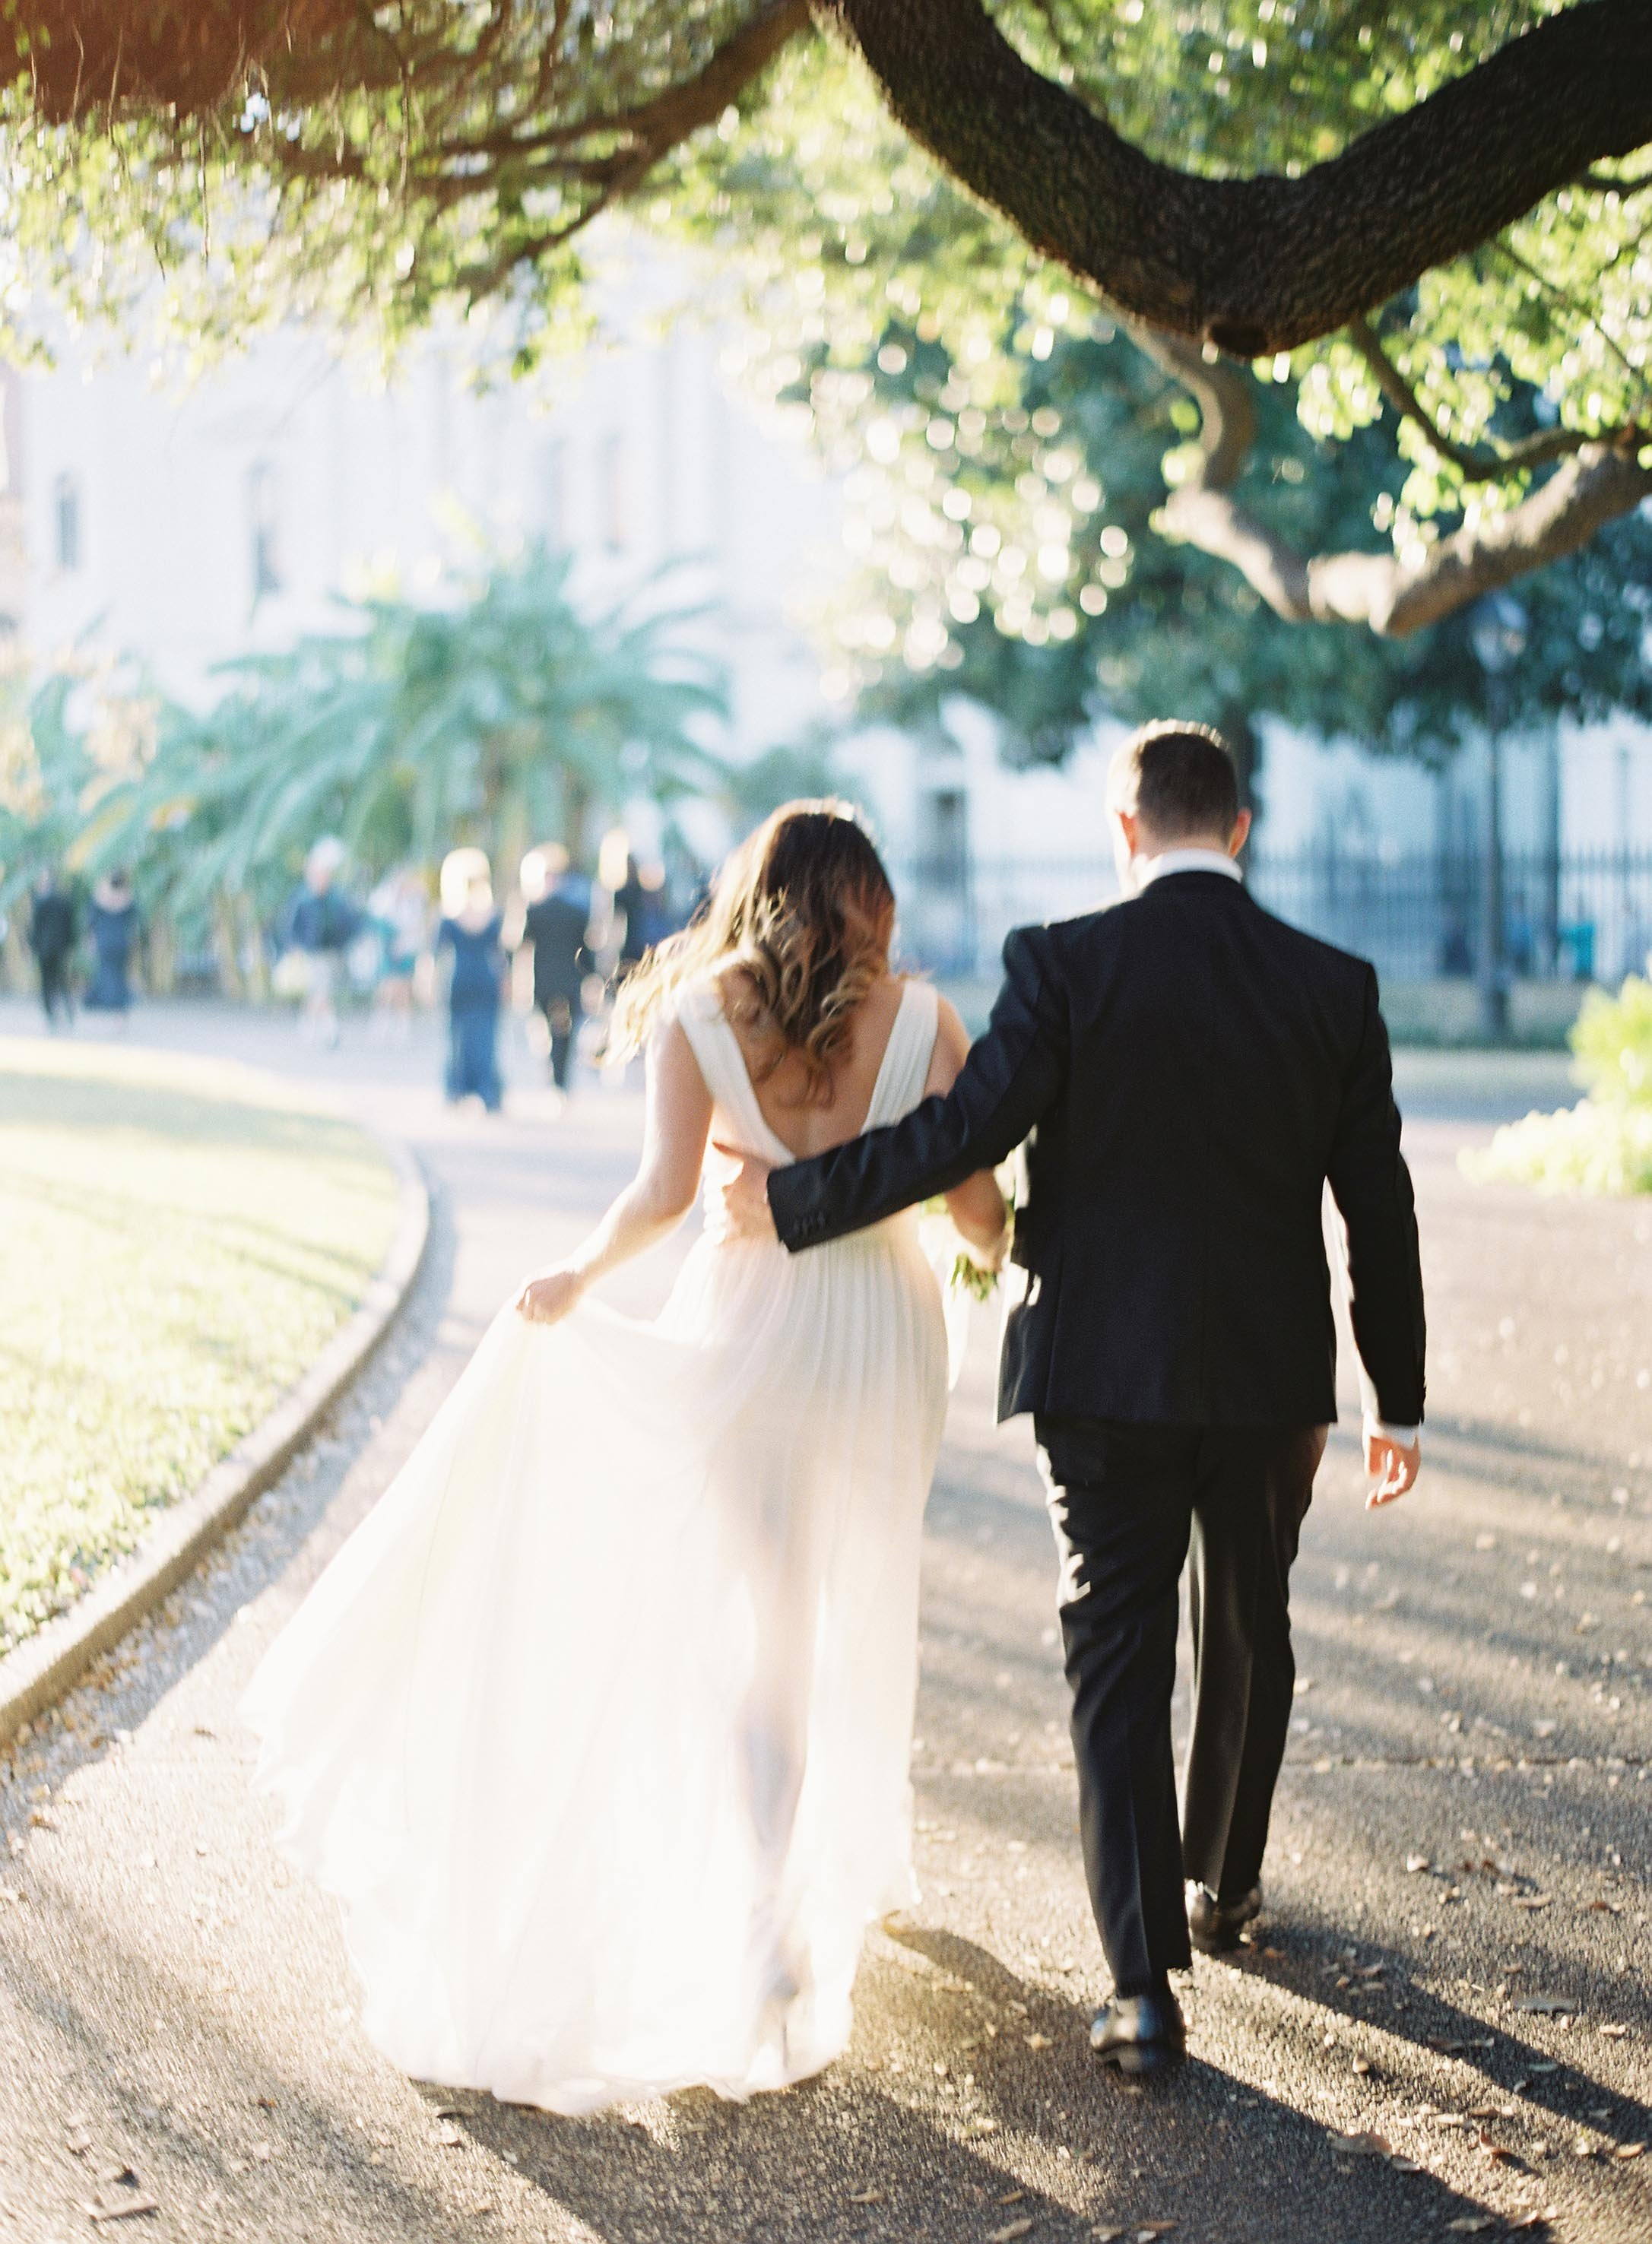 Wedding Planning Tips   Sapphire Events   Wedding Planner   Rylee Hitchner Photography   How to Use Pinterest   Jackson Square   New Orleans   French Quarter